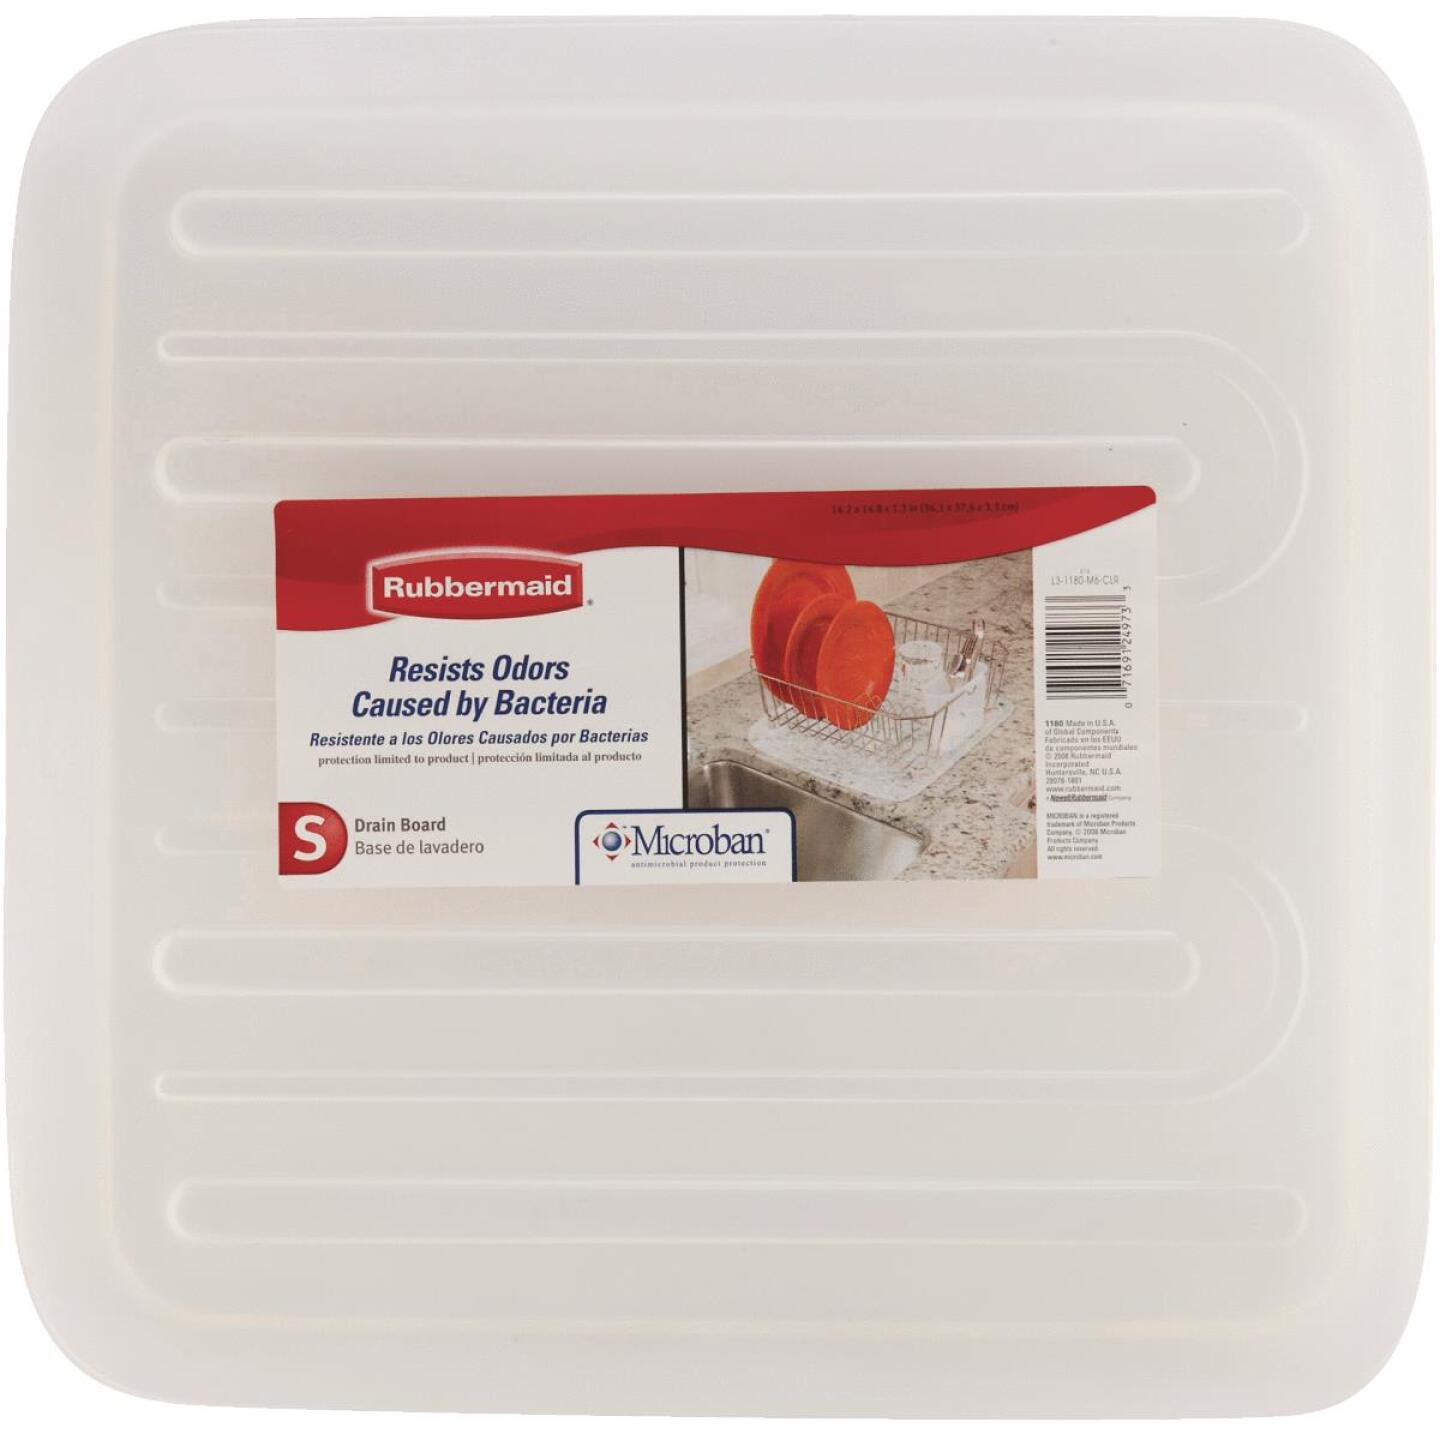 Rubbermaid 14.38 In. x 15.38 In. Clear Sloped Drainer Tray Image 2